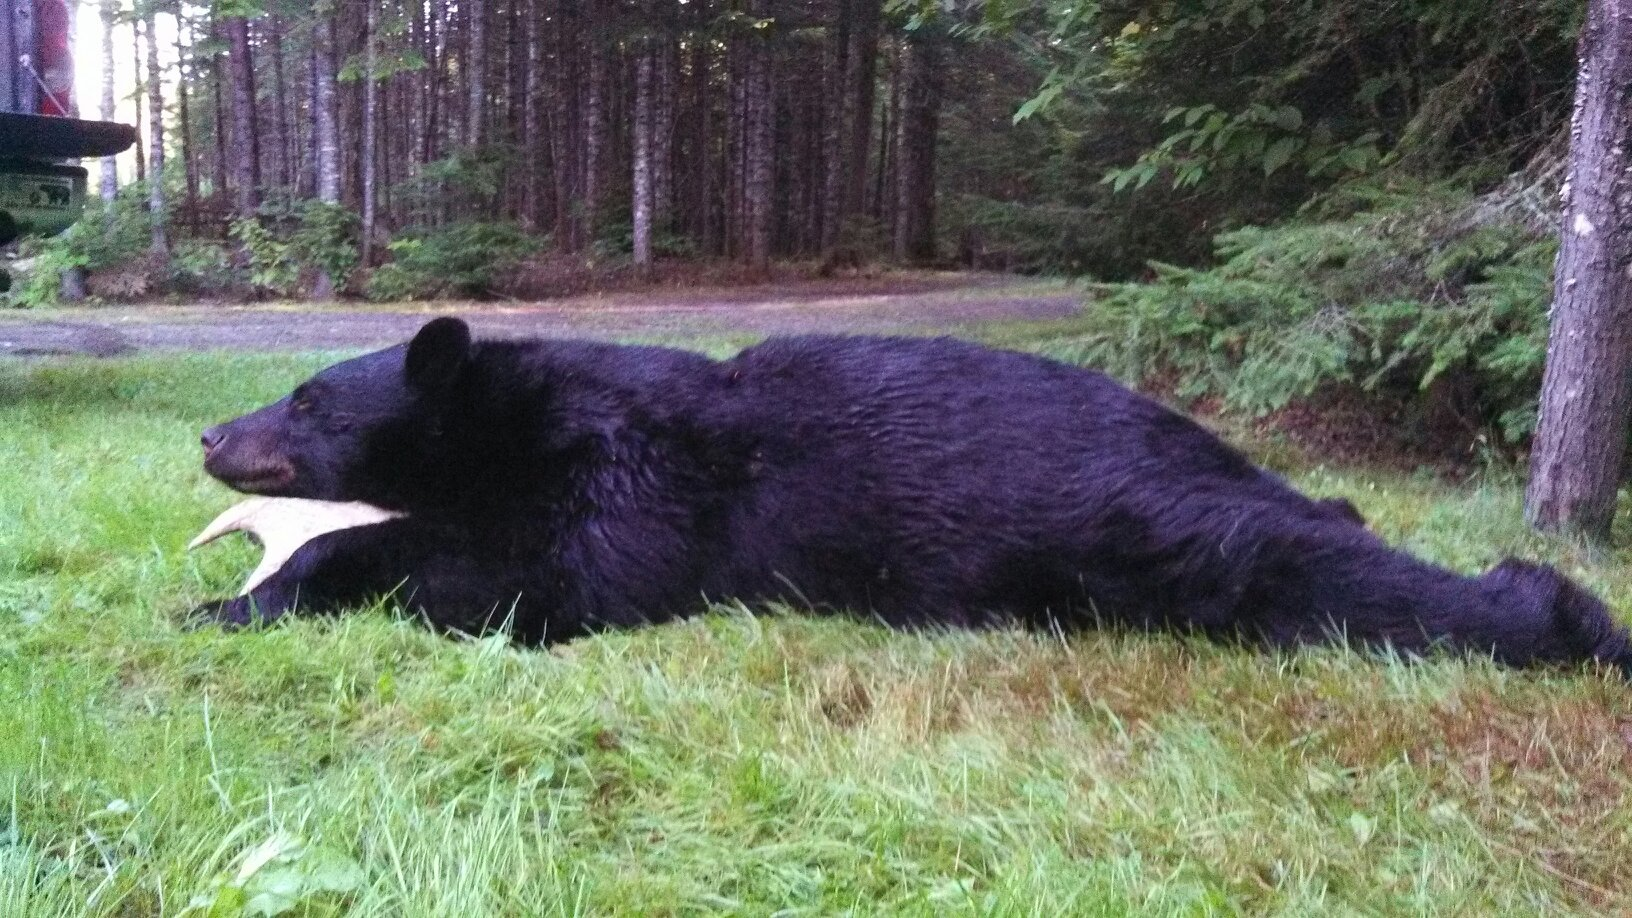 400 plus pound bear, beautiful creature, we eat and honor